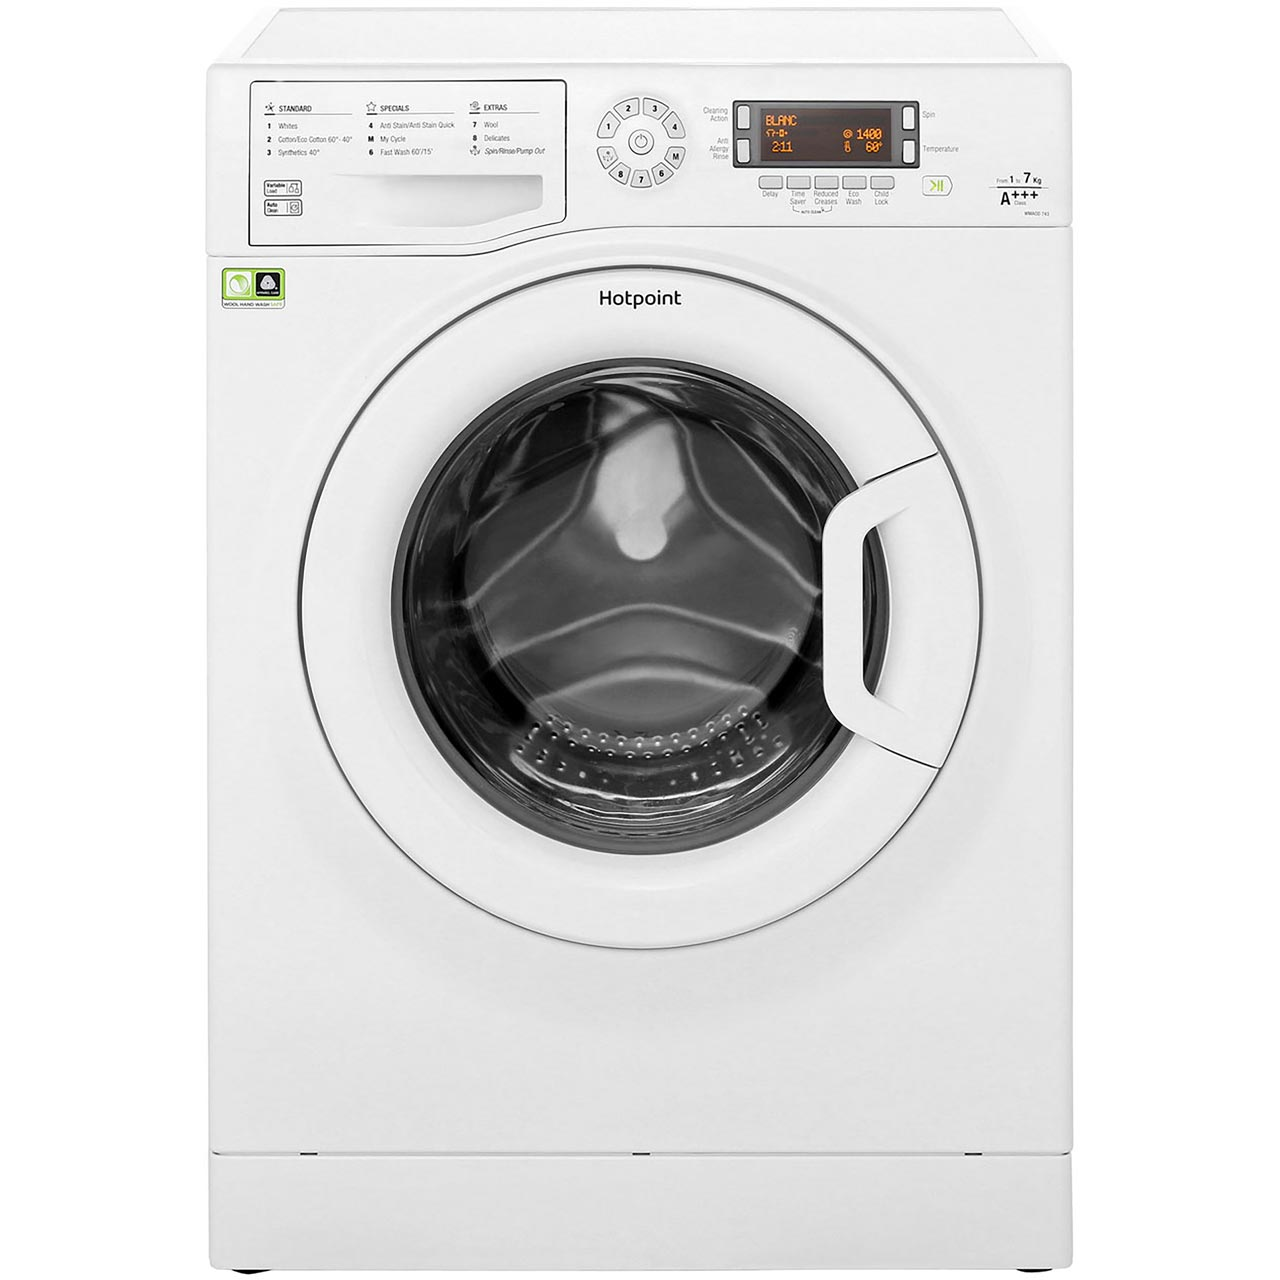 ... Hotpoint CarePlus WMAOD743P 7Kg Washing Machine with 1400 rpm - White - A+++ Rated - WMAOD743P_WH ...